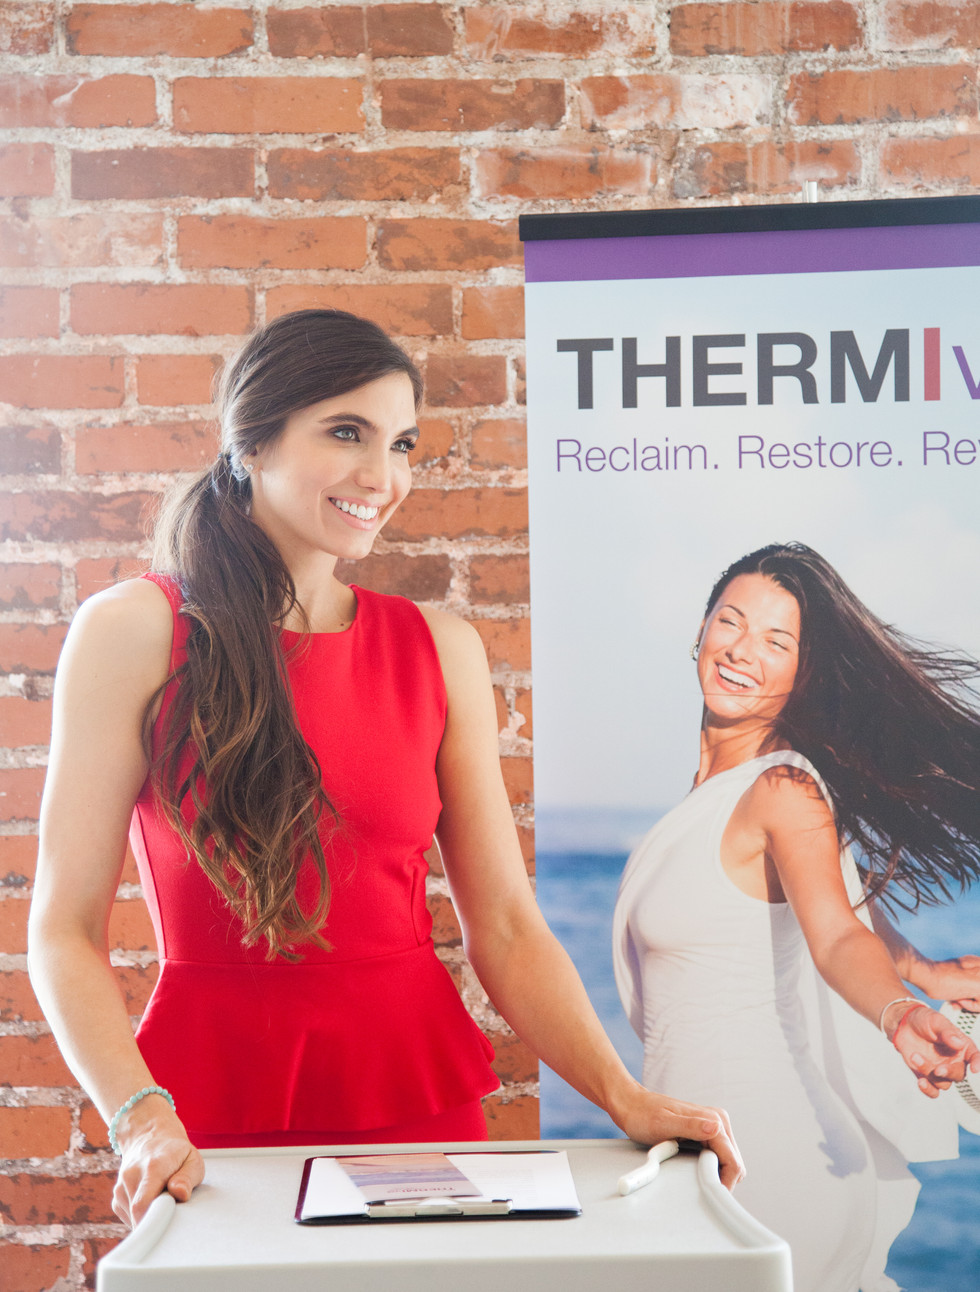 What Sets ThermiVa Apart From Other Vaginal Rejuvenation Treatments?